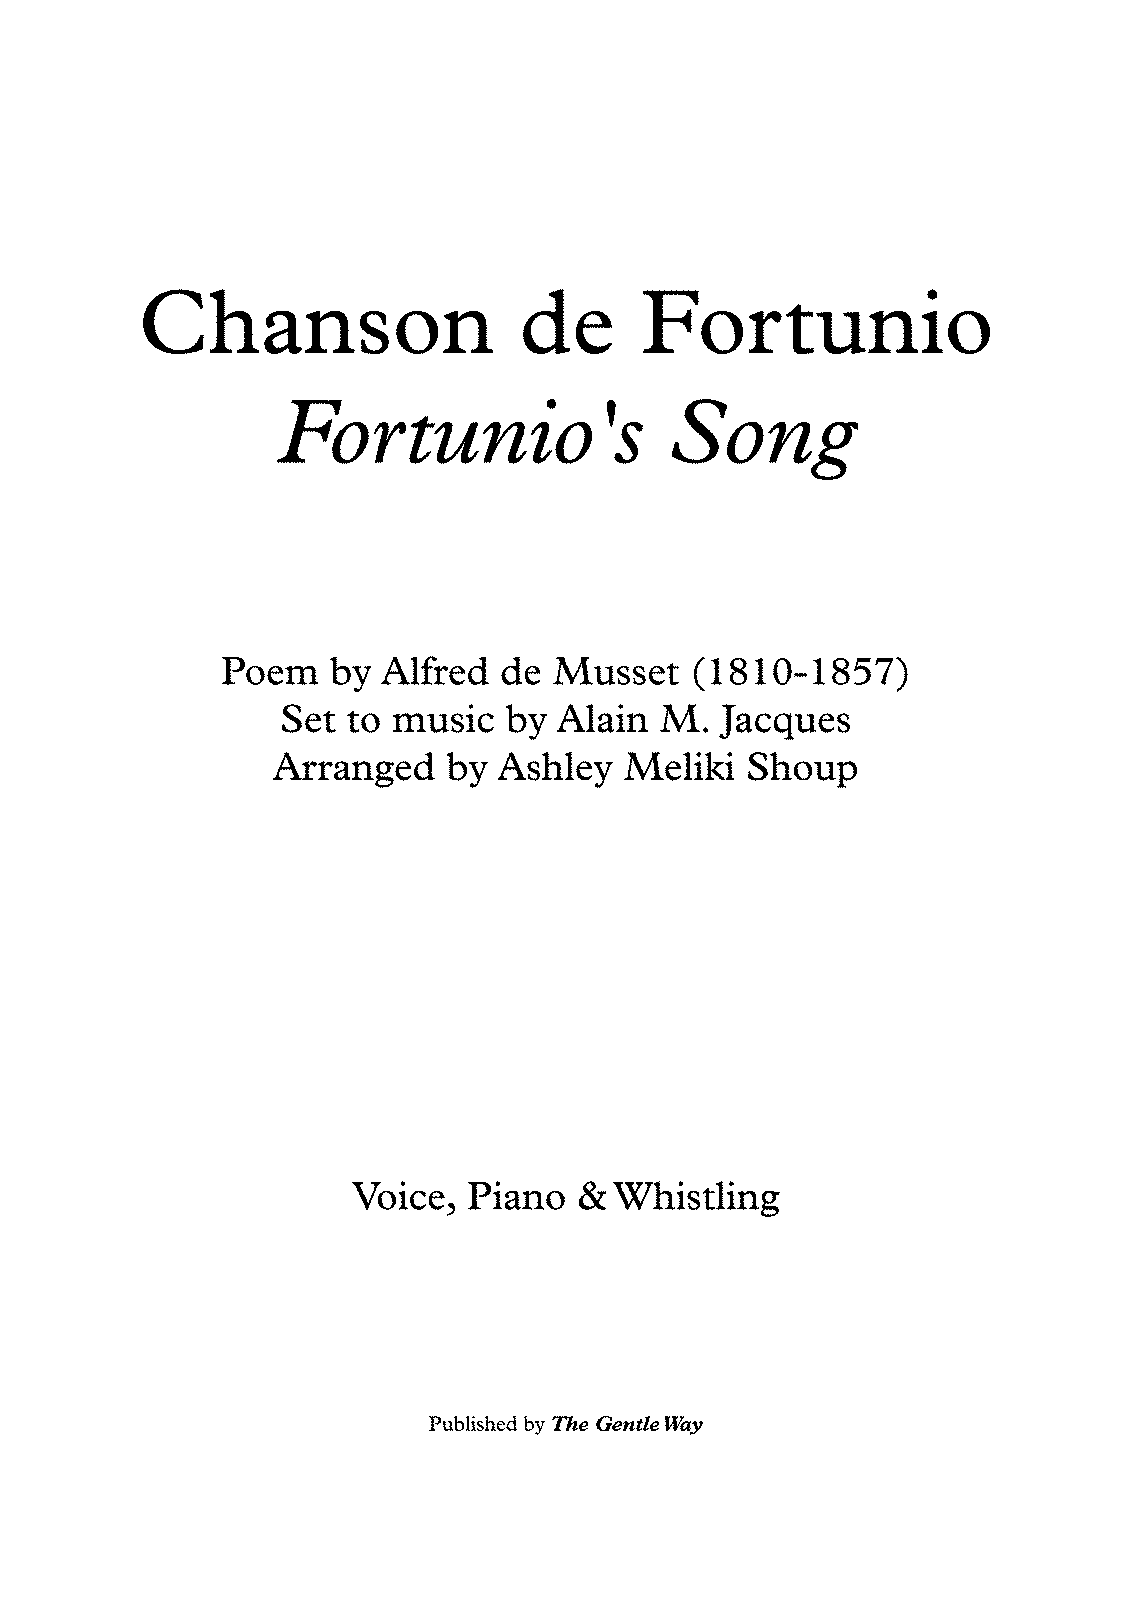 PMLP449264-Chanson de Fortunio (A. Jacques - A. de Musset) - bilingual - piano & whisttle - Full Score.pdf